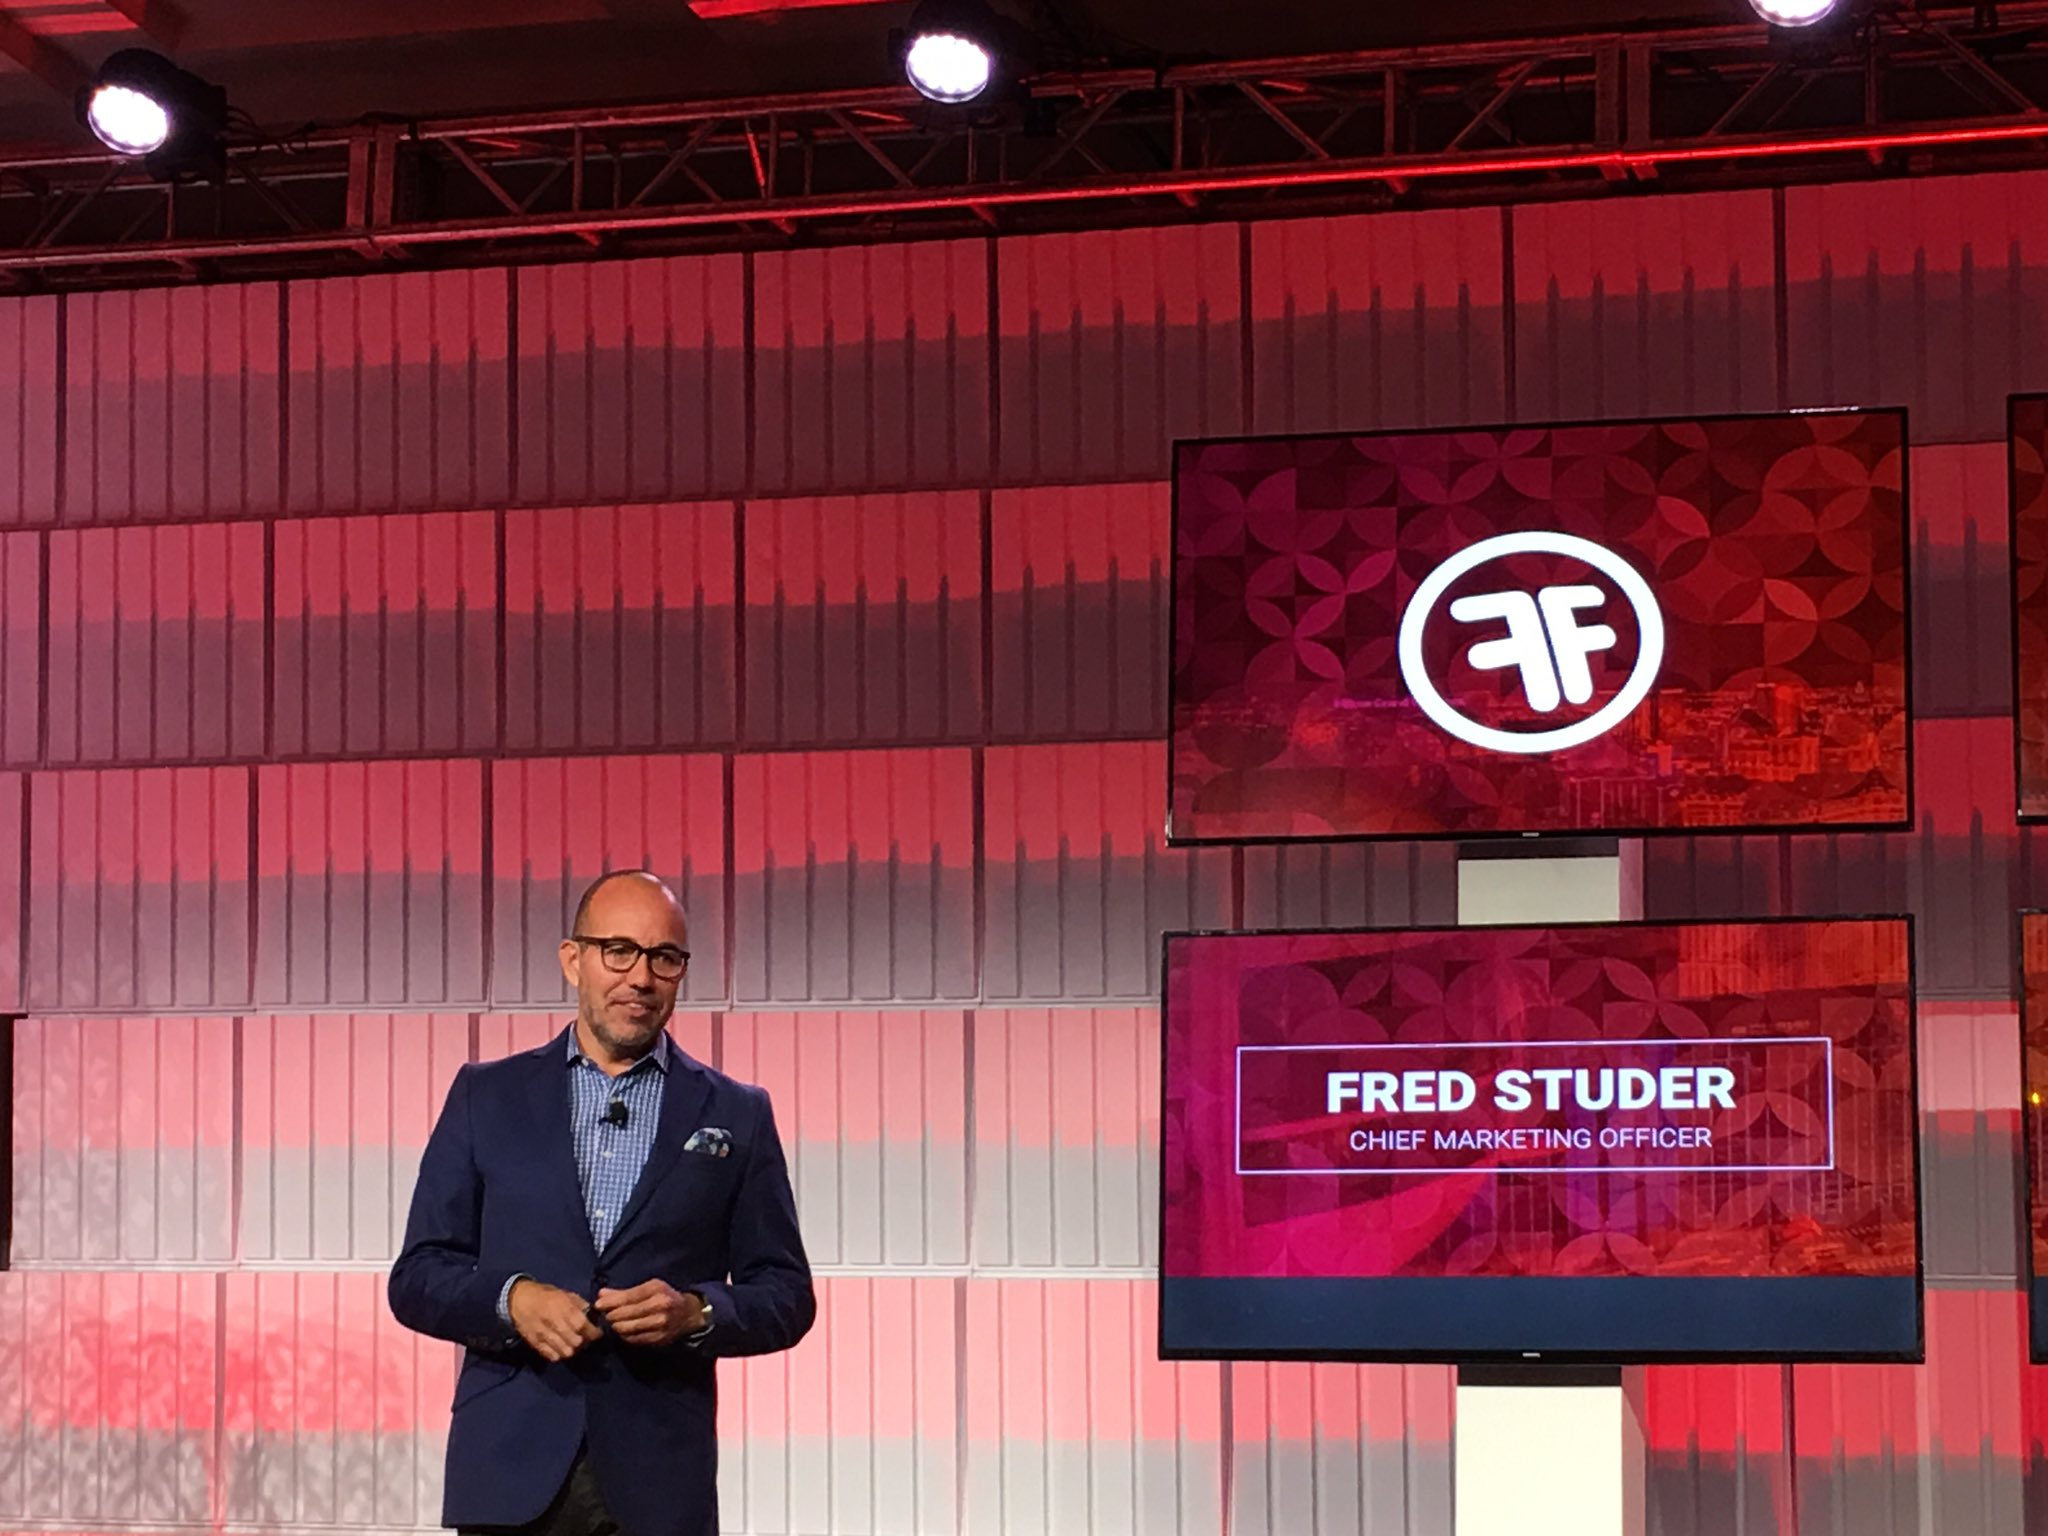 MyPOV: @fredstuder all processes should be customer centric #FFComm17 https://t.co/rx6a7zTfSo